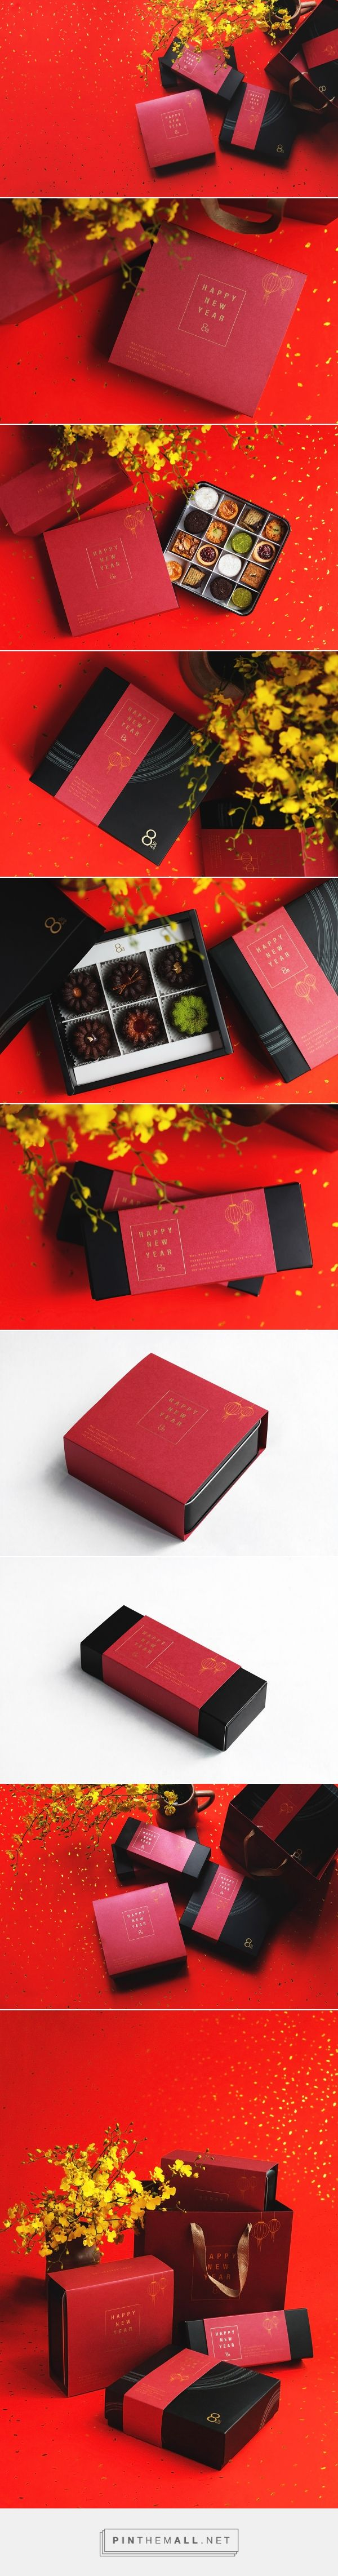 8%ice 2016 New Year Packaging on Behance by Tan Yu-Chen Taipei, Taiwan curated by Packaging Diva PD.  Tasty Happy New Year packaging.